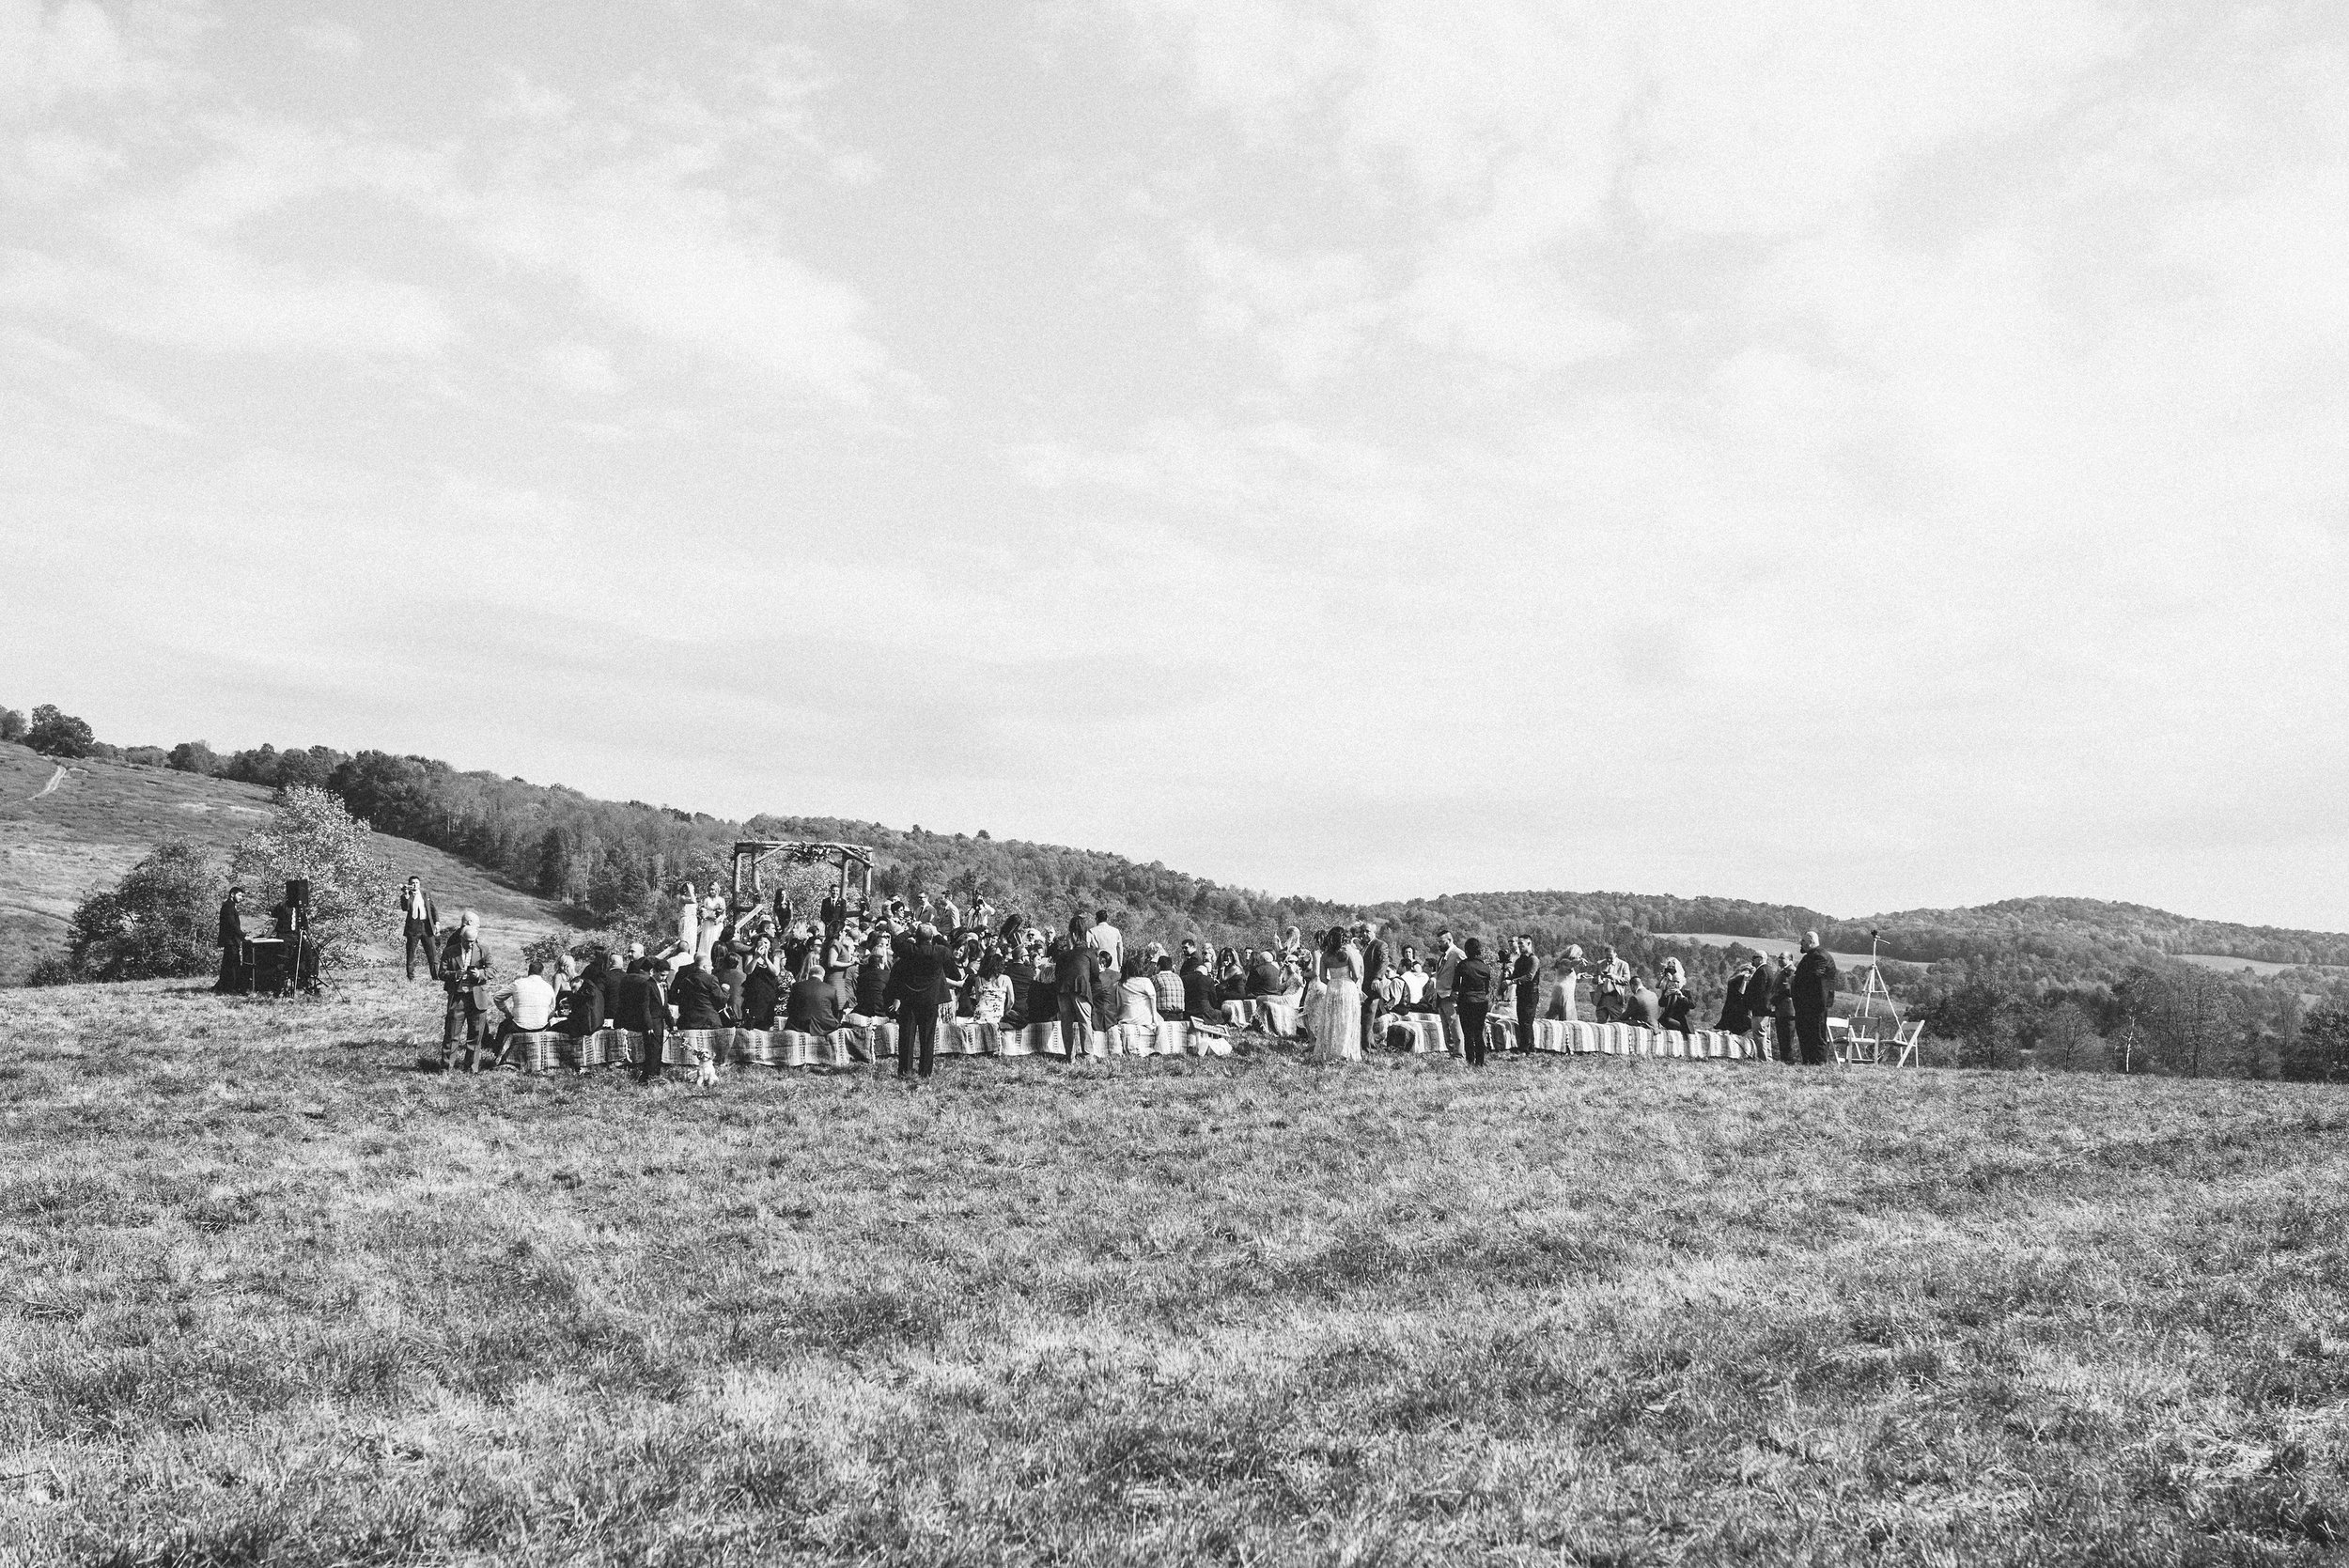 brittany-eric-upstate-diy-farm-wedding-couple-of-dudes-lawrence-braun-Hi-Res-0274.jpg